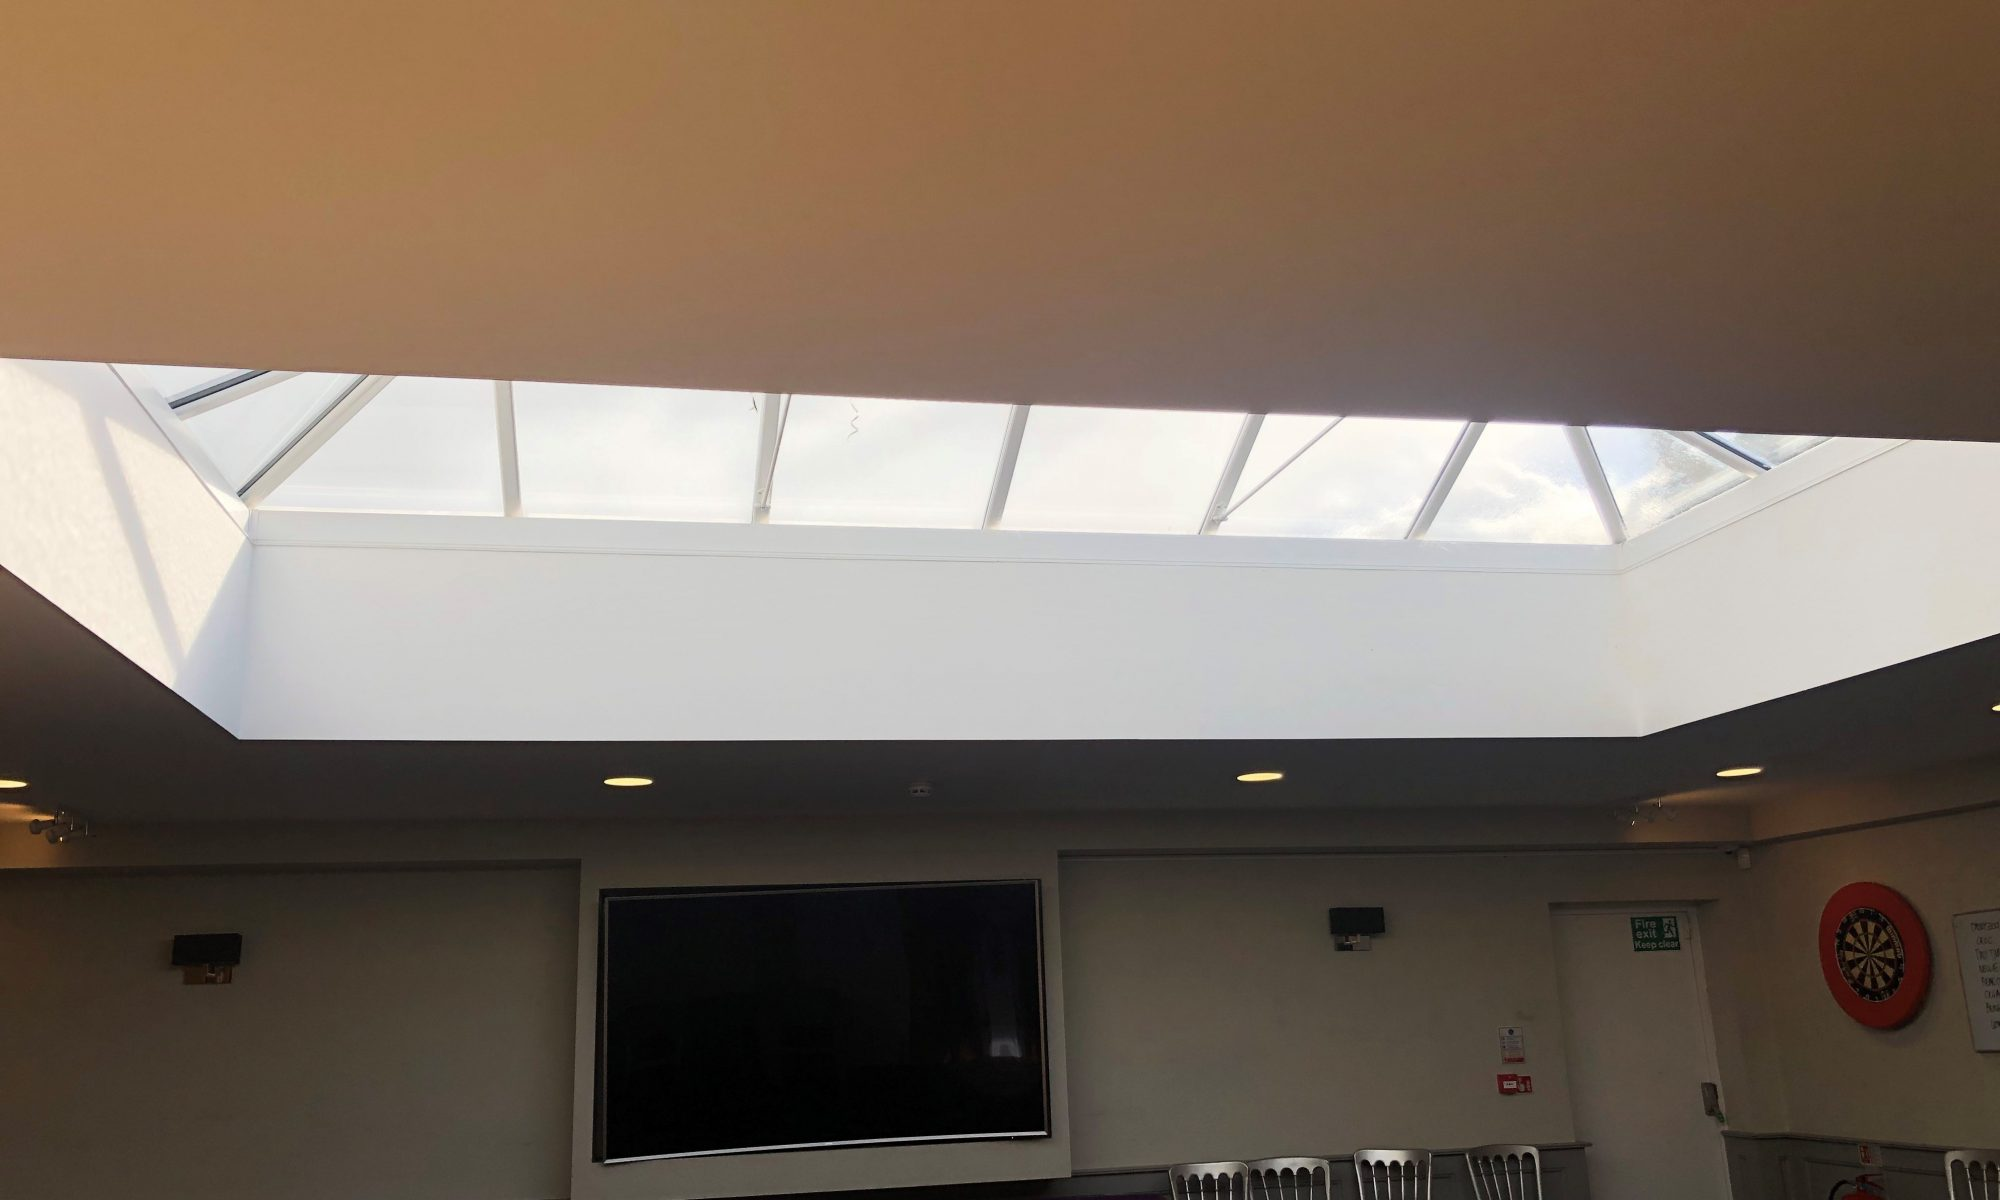 What blind should I put on my roof lantern window?